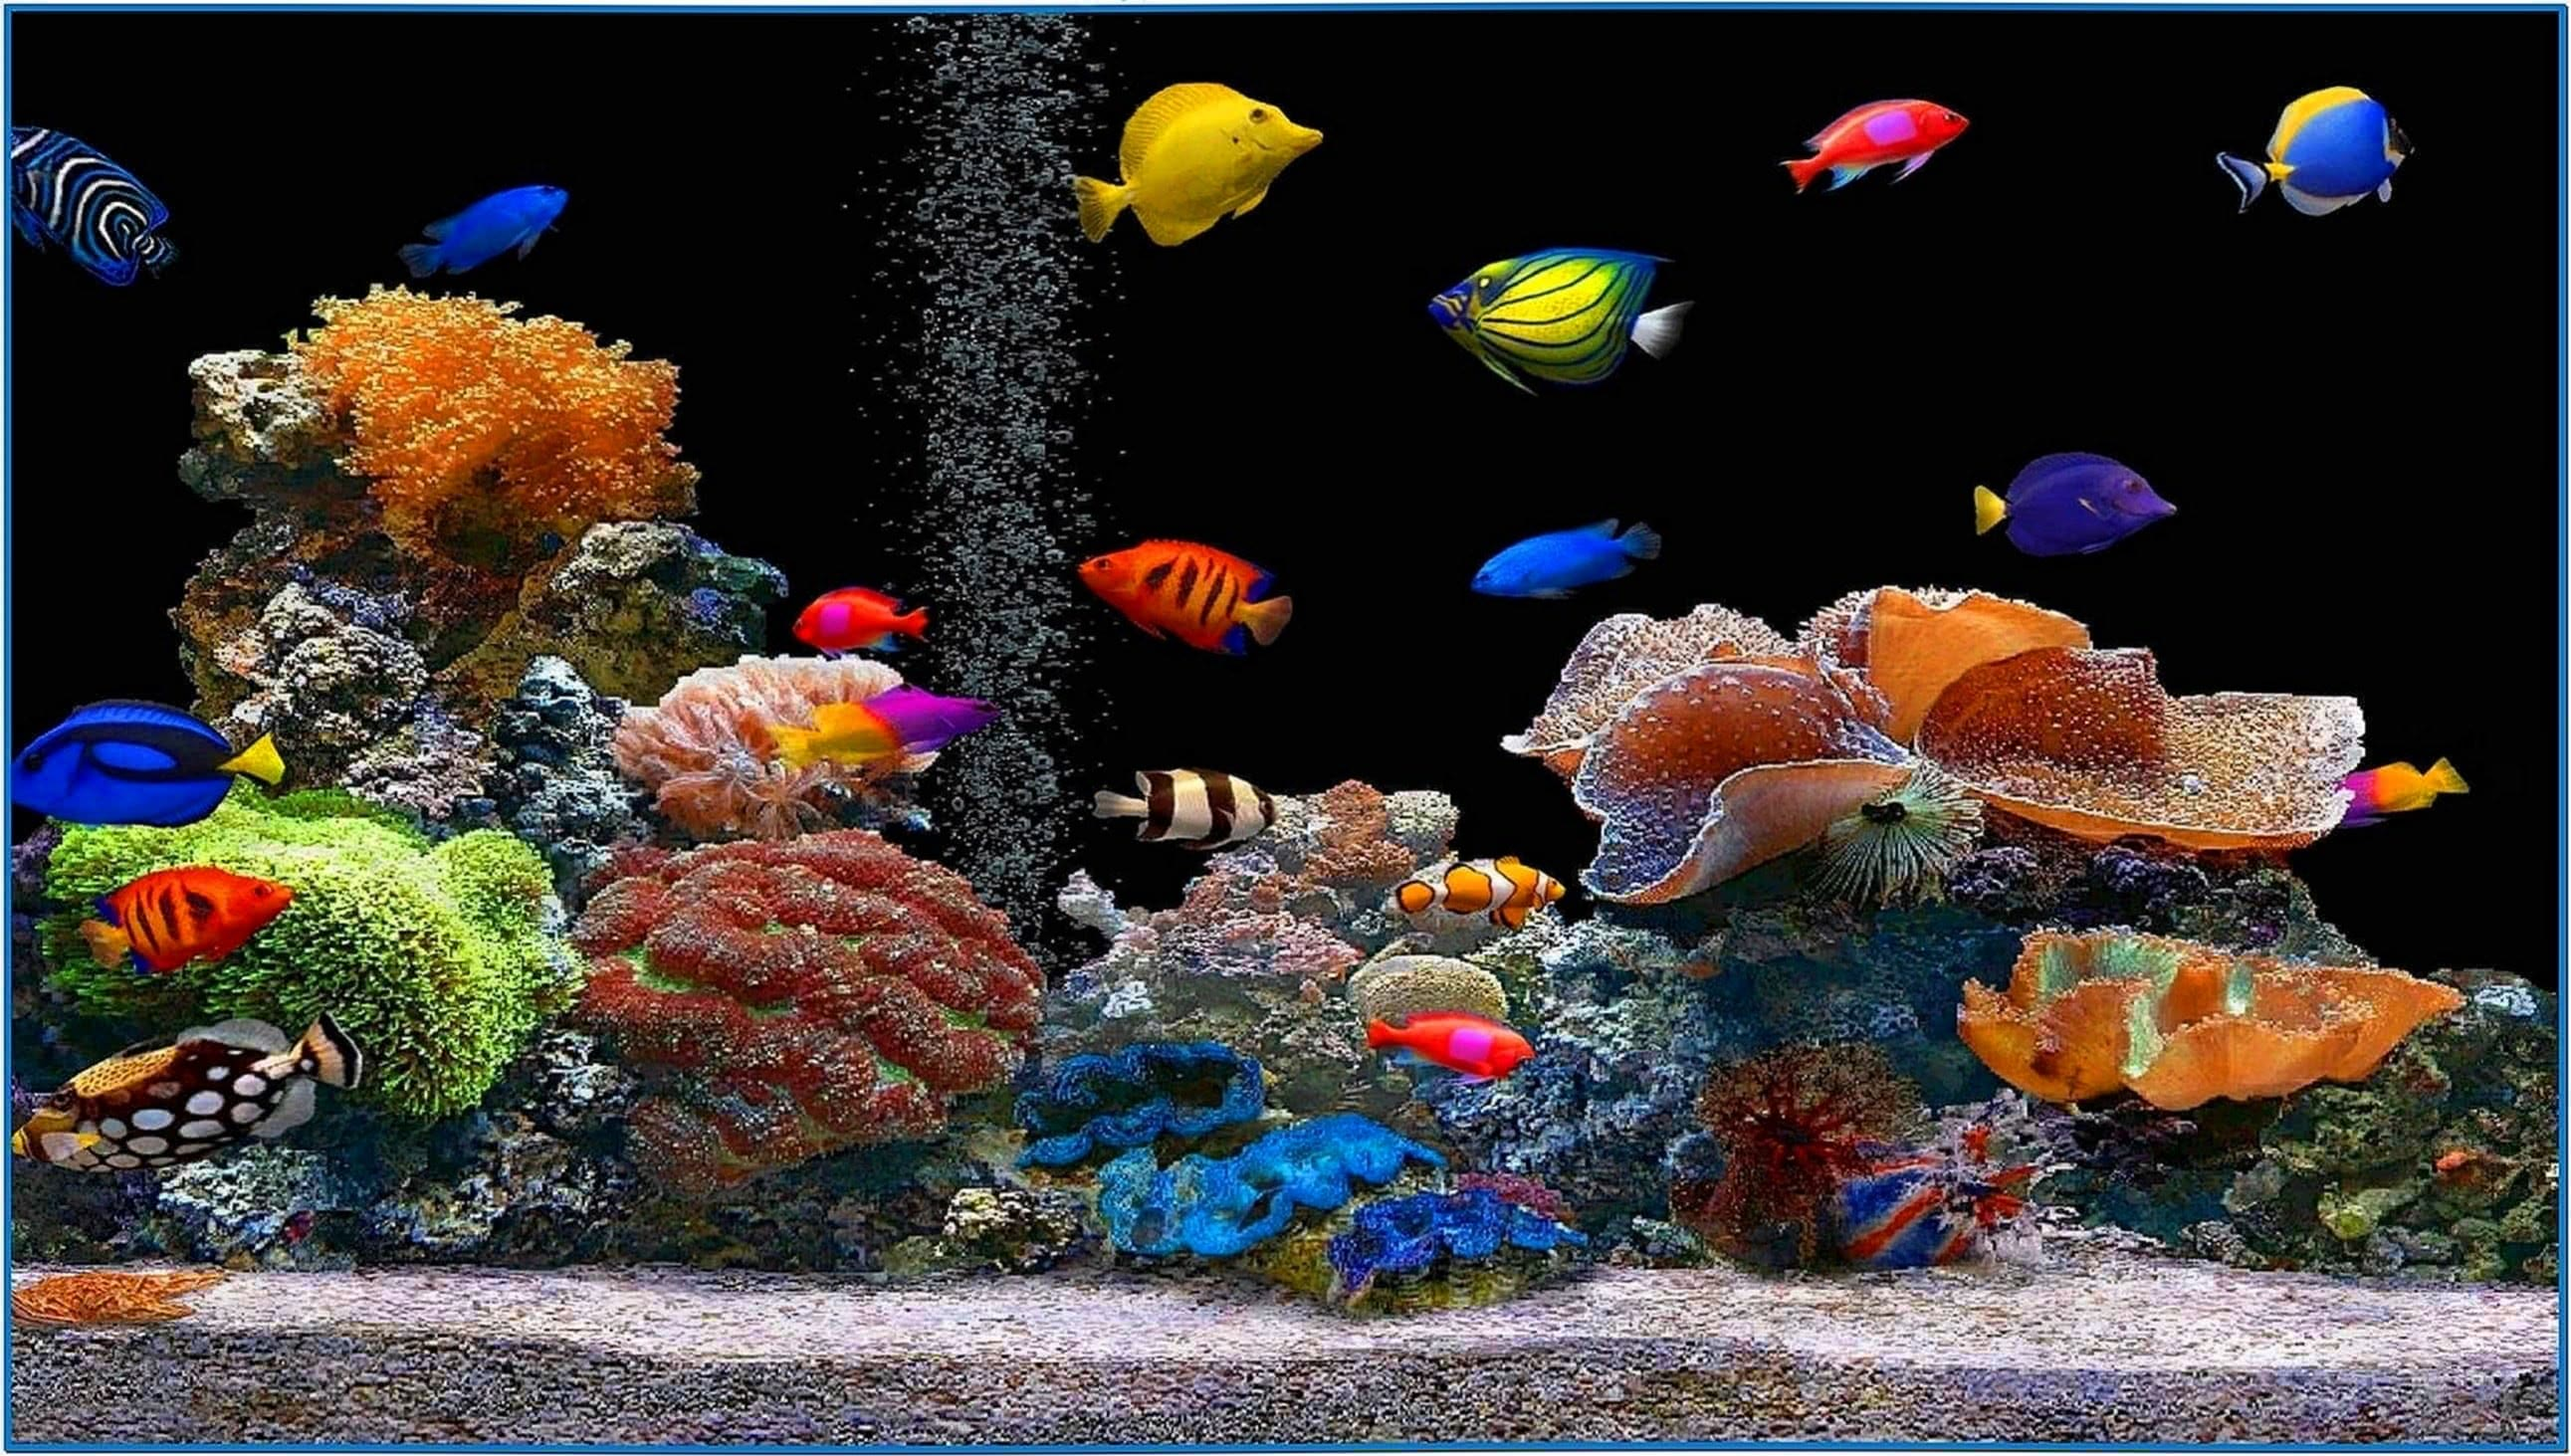 tropical fish 3d screensaver 1 2 serial number 2017 fish